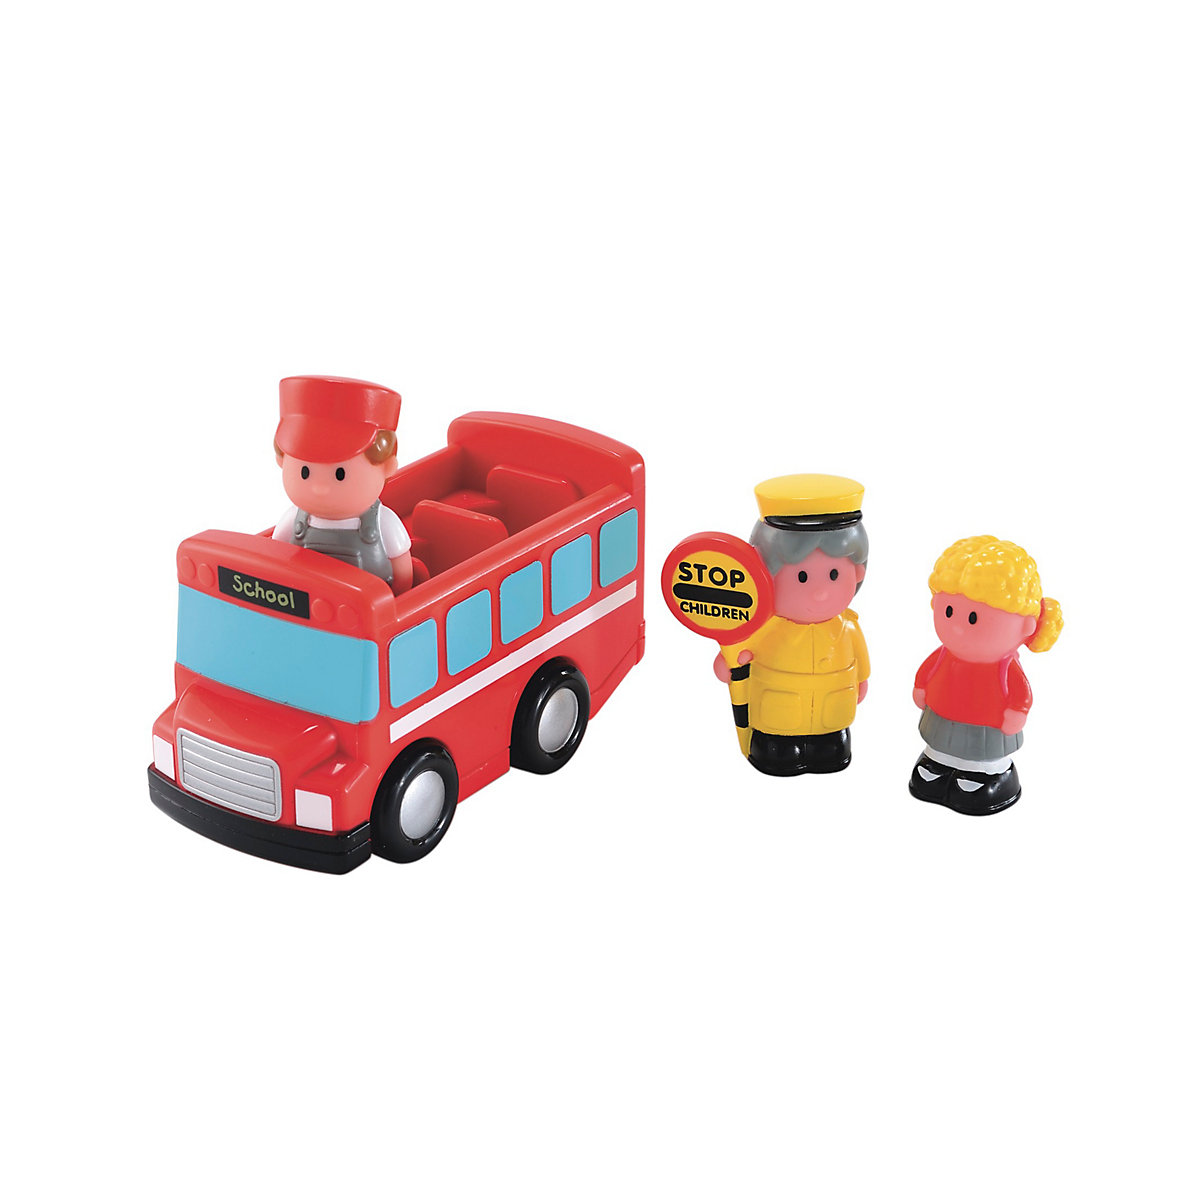 Bus Toys For Girls : New elc boys and girls happyland school bus toy from